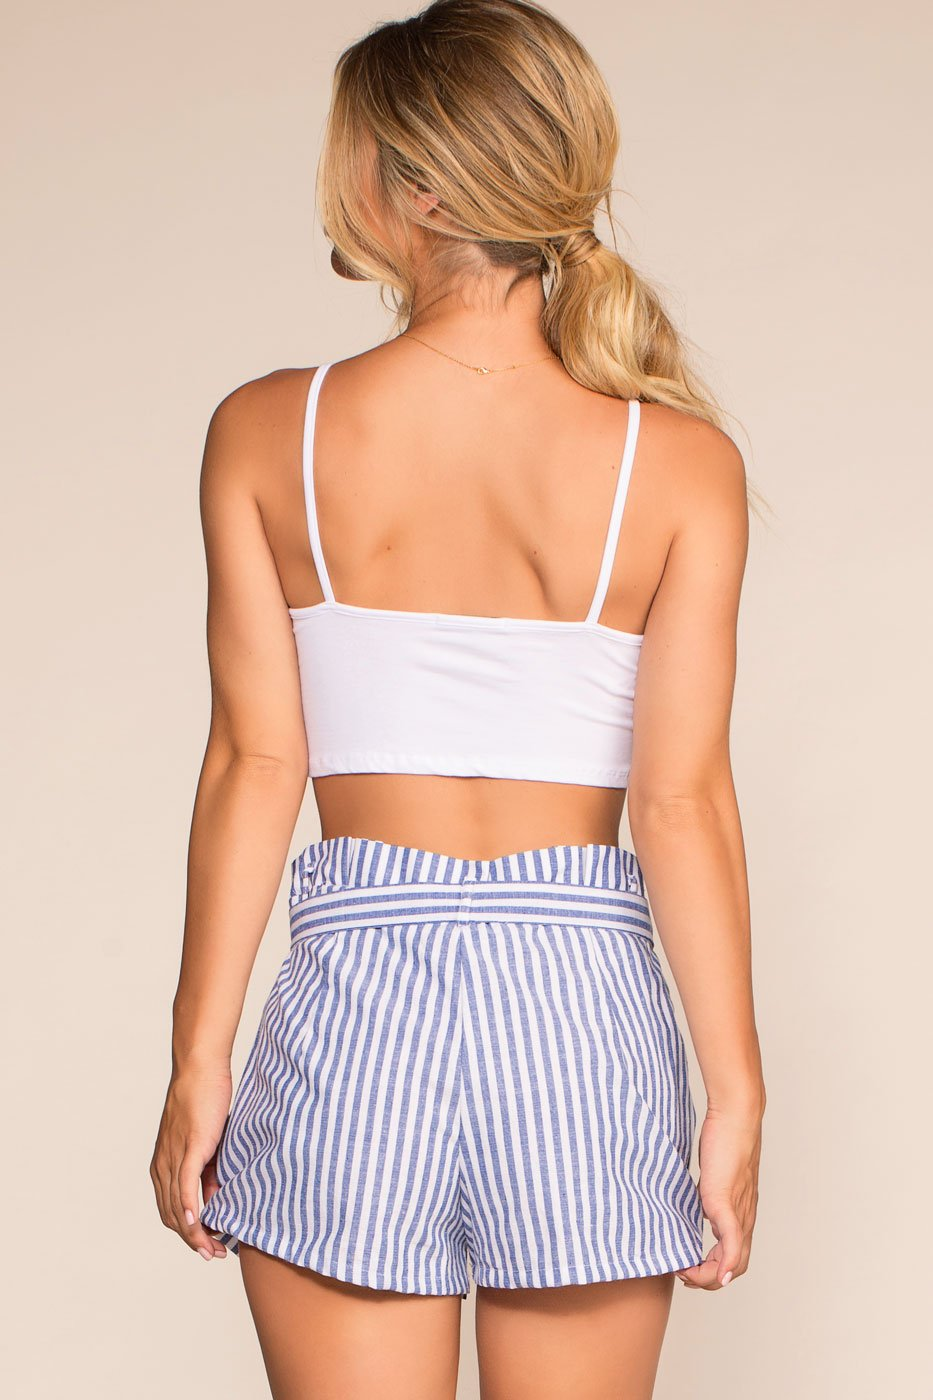 Shorts - Nautical Stripe High Waisted Shorts